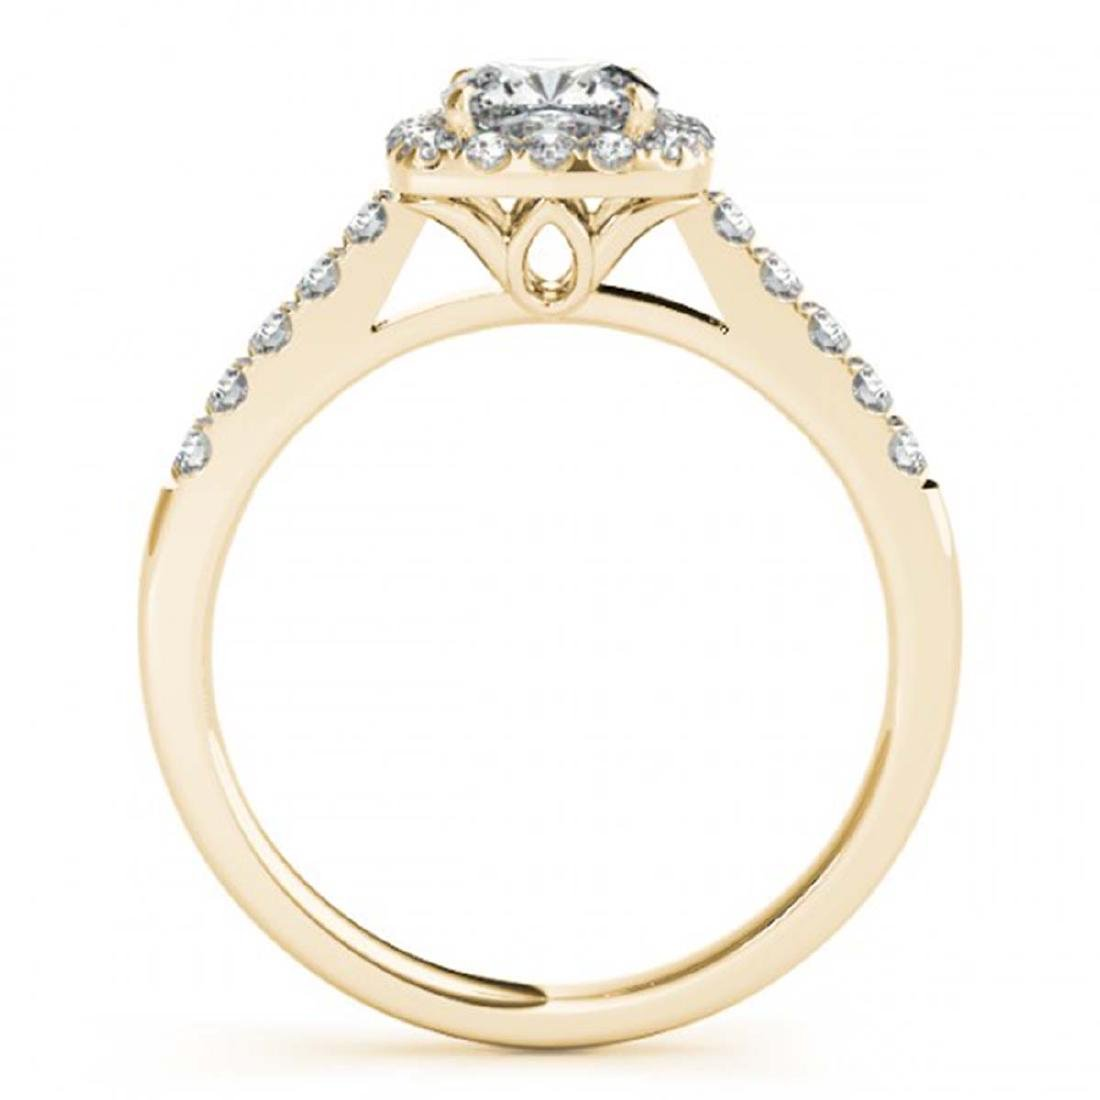 1.16 CTW VS/SI Cushion Diamond Solitaire Halo Ring 14K - 2